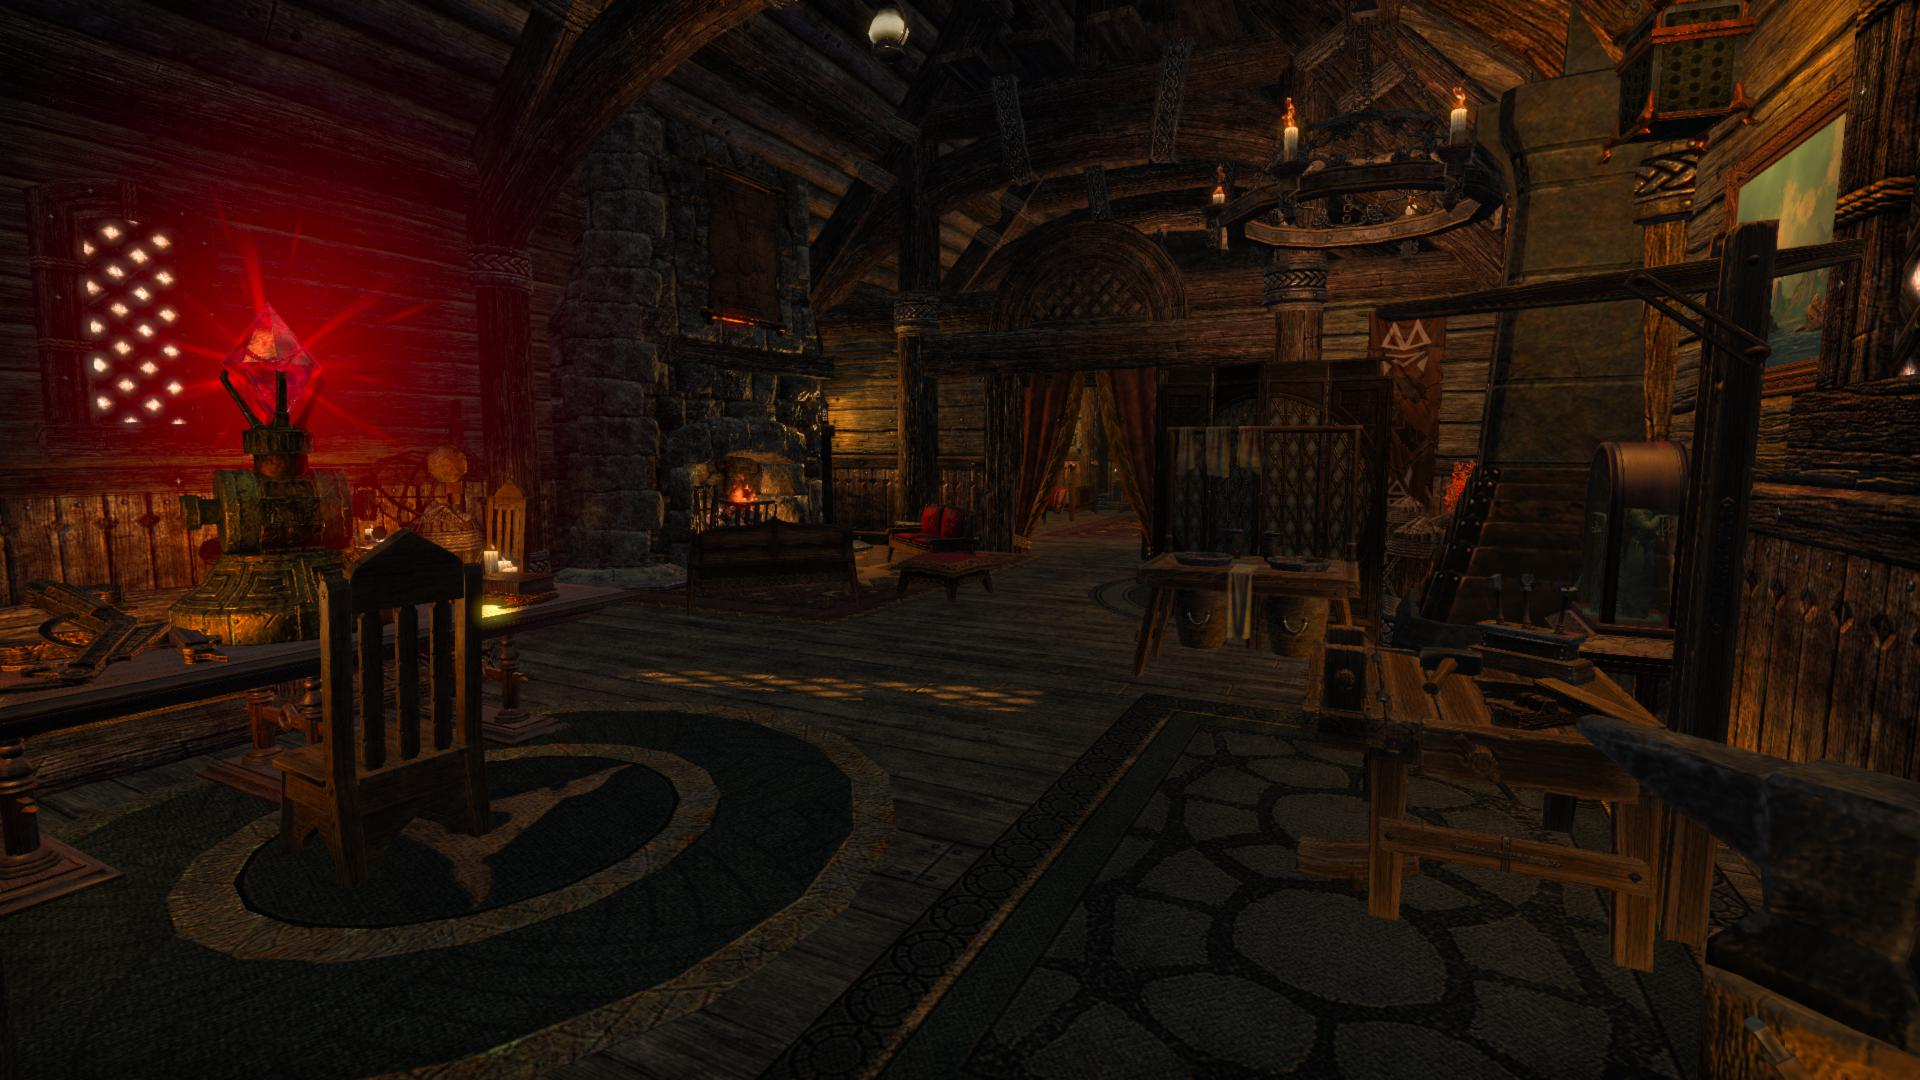 One of my houses in the game. It's a wooden building with lots of wooden furniture, a fireplace and a curious glowing device on a table.